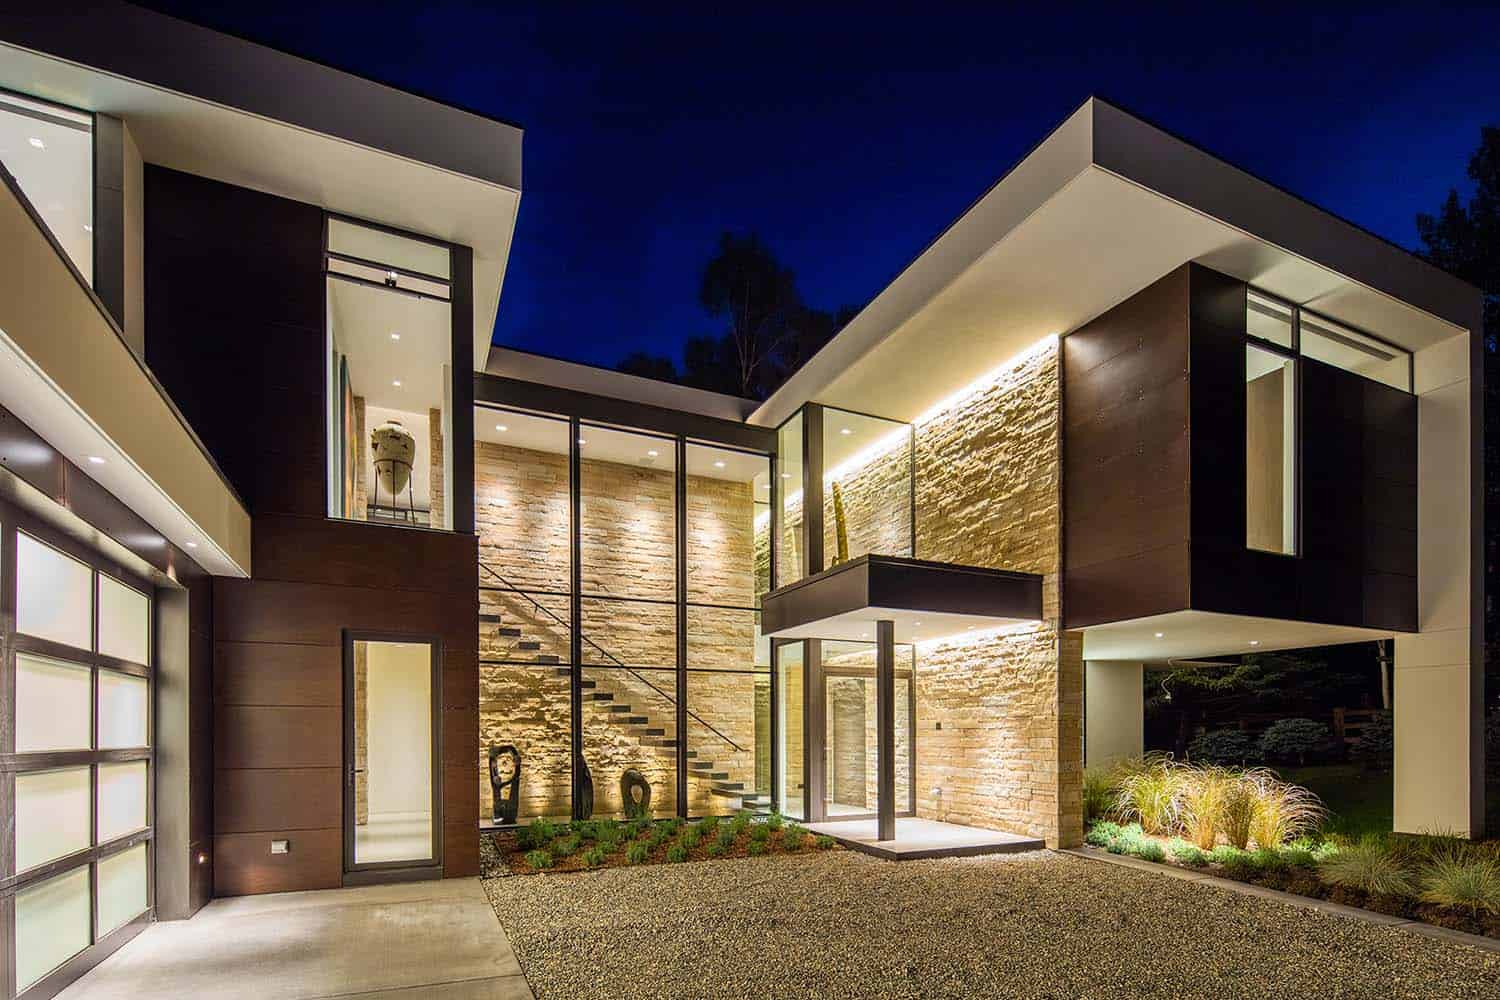 Contemporary Mountain Home-Charles Cunniffe Architects-28-1 Kindesign